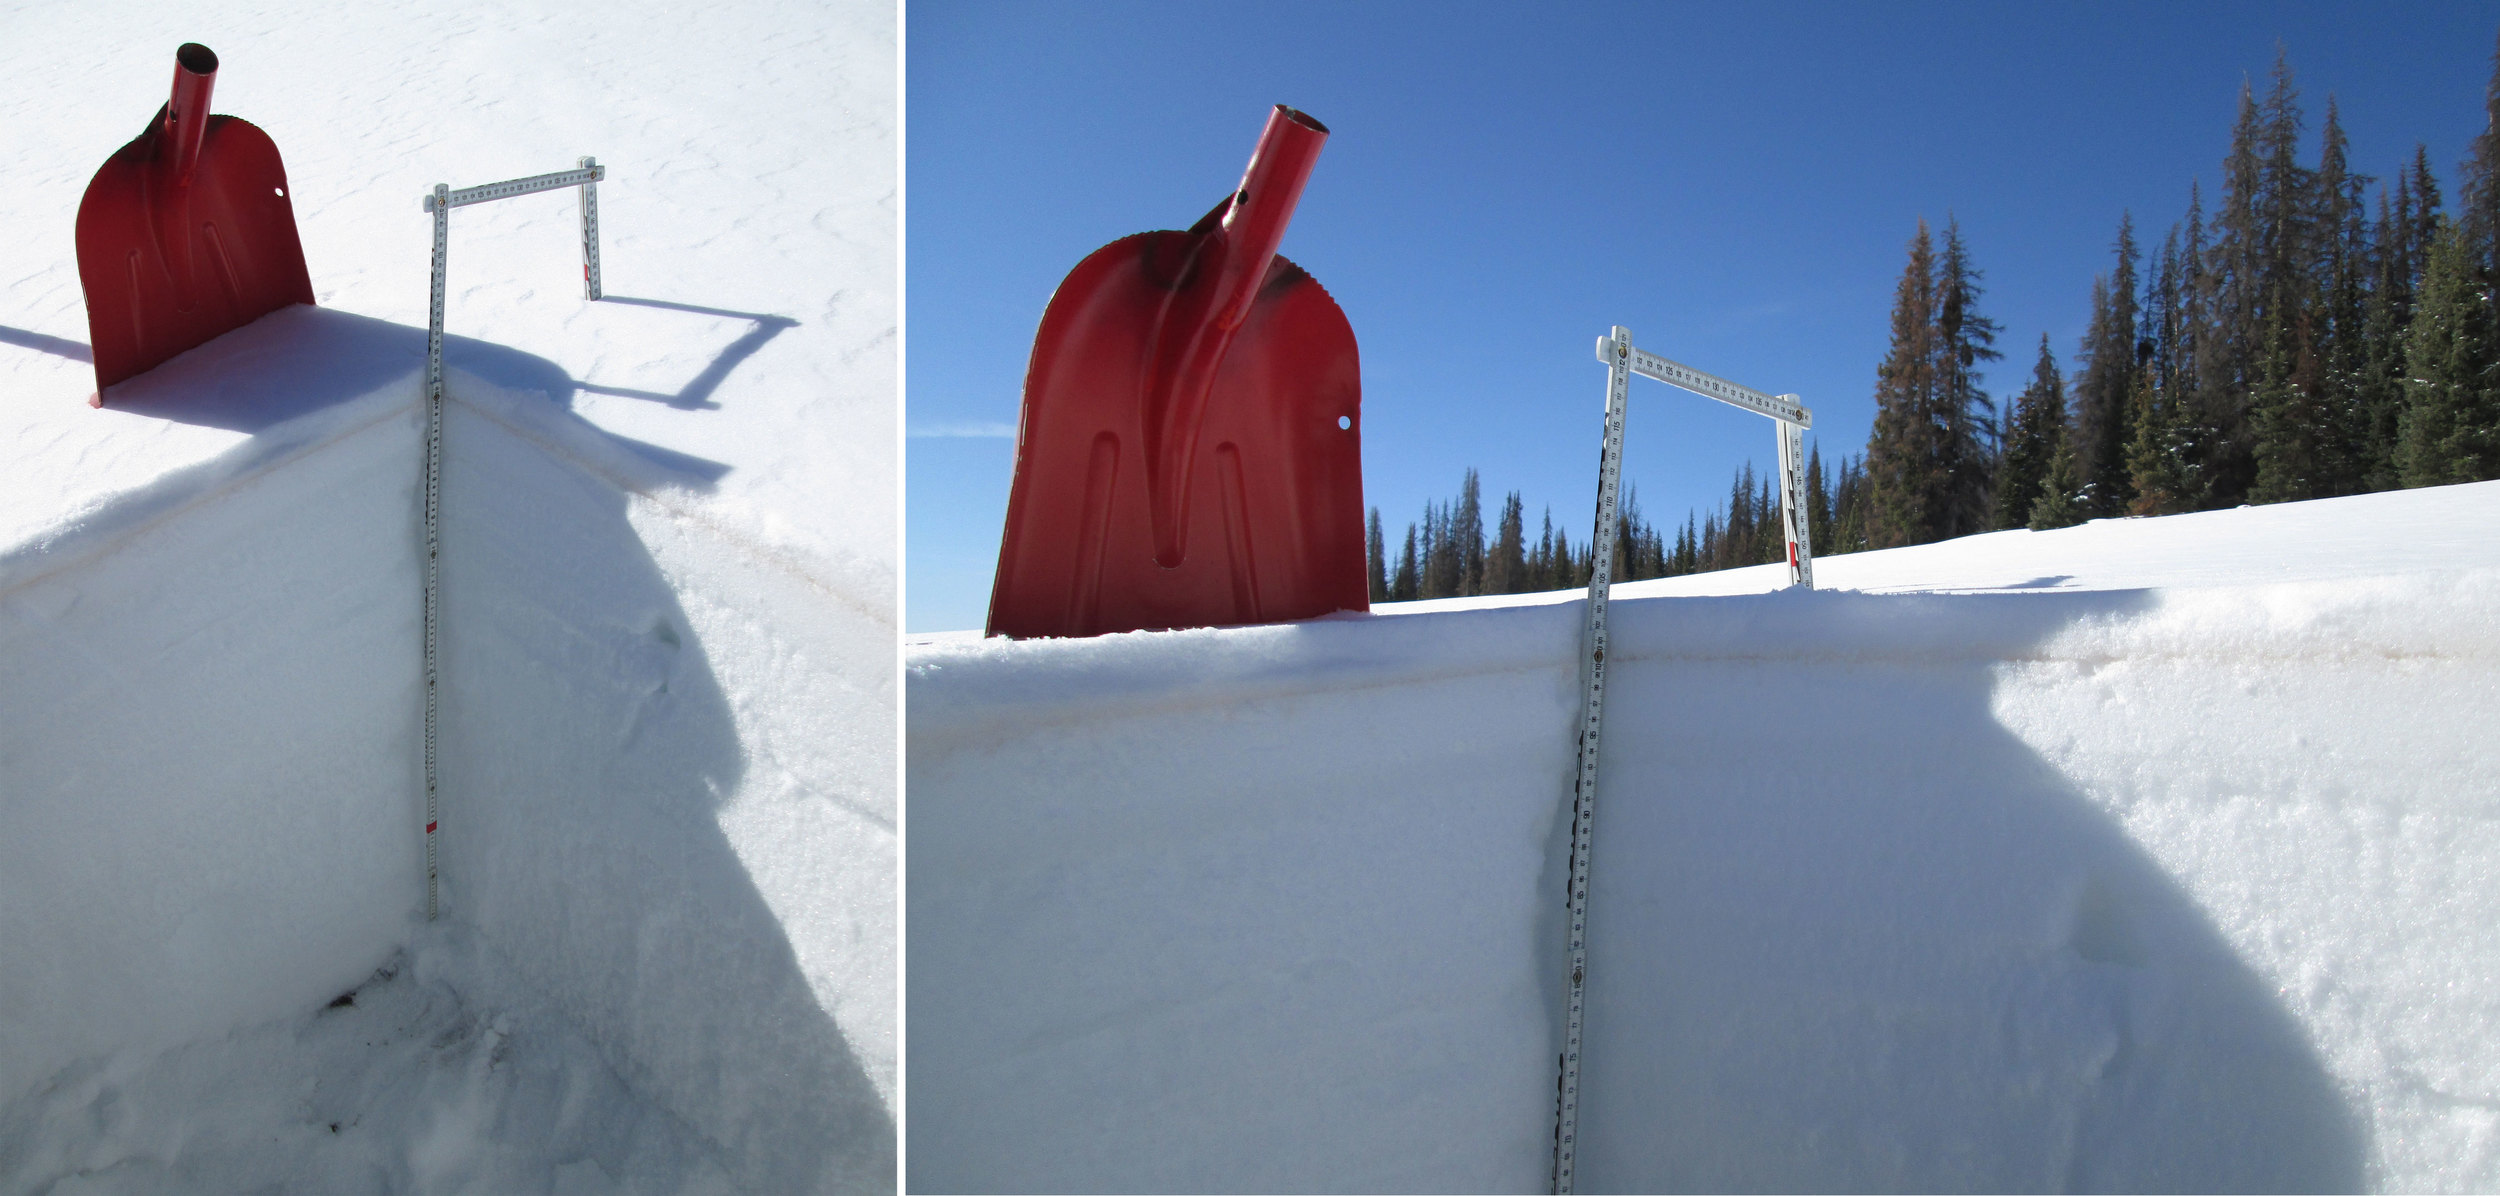 "The March 29 snow profile at the Spring Creek Pass CODOS site.  Dust layer D3-WY2014 is clearly visible in a thin band 1-2"" below the snow surface, within a melt-freeze (polycrystal) crust.  Dust layer D4 (March 30) fell onto the clean snow surface seen in this profile, significantly reducing snow albedo until fresh snowfall beginning today (April 2) and began to bury D4.  Once re-exposed, radiative forcing in layer D4 will need to melt very little underlying SWE before merging with layer D3, reducing snow albedo even further."